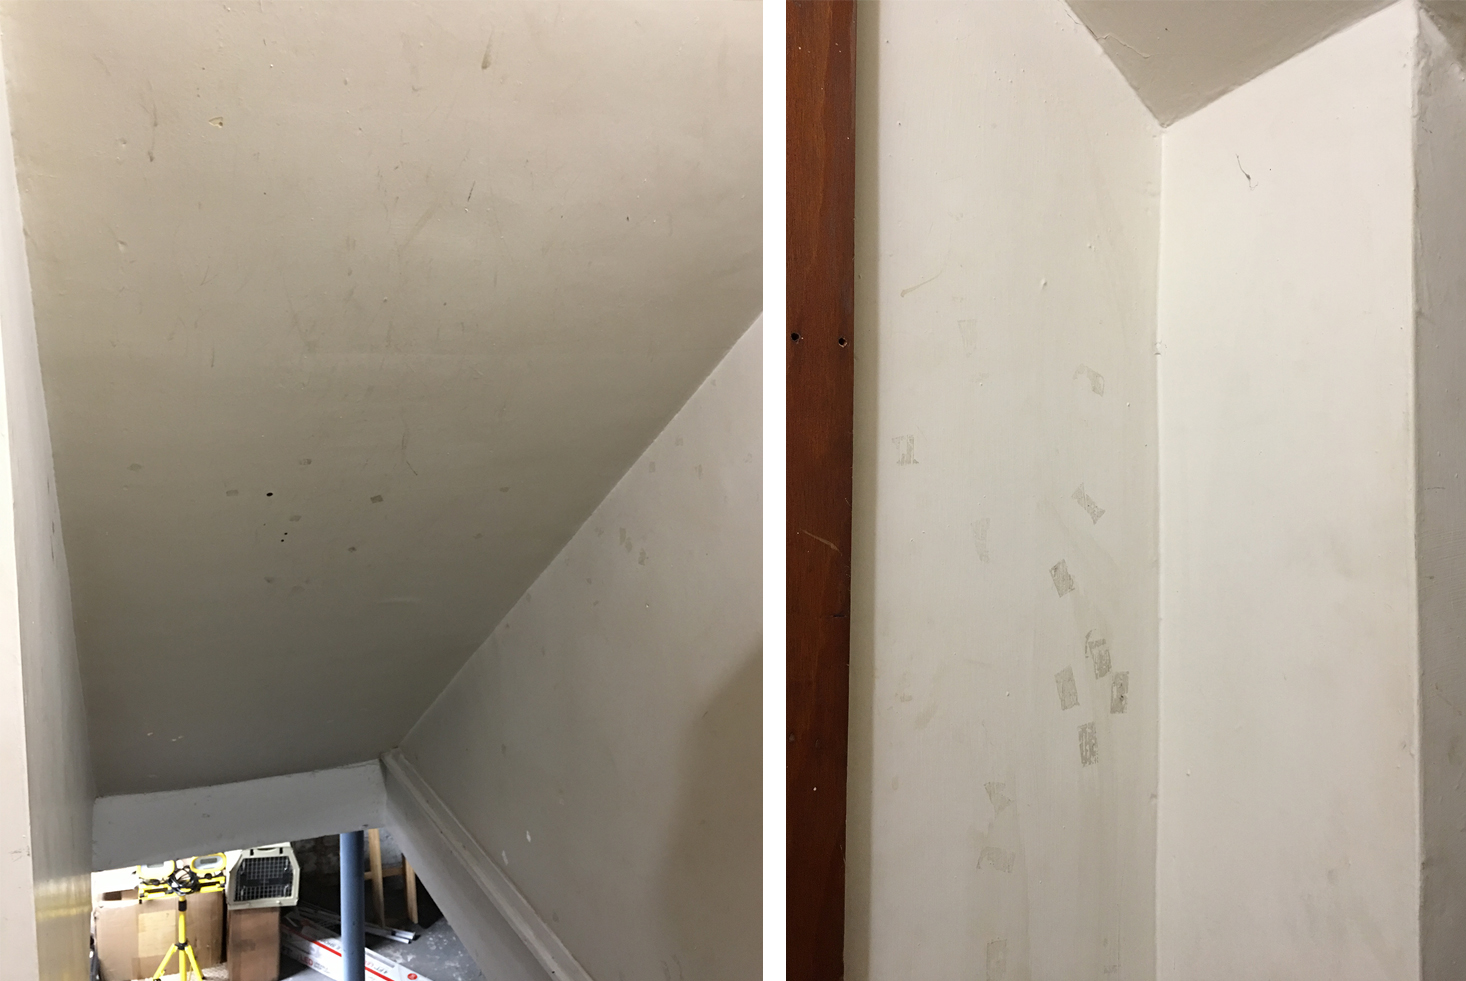 Double Sided Tape Residue On Walls